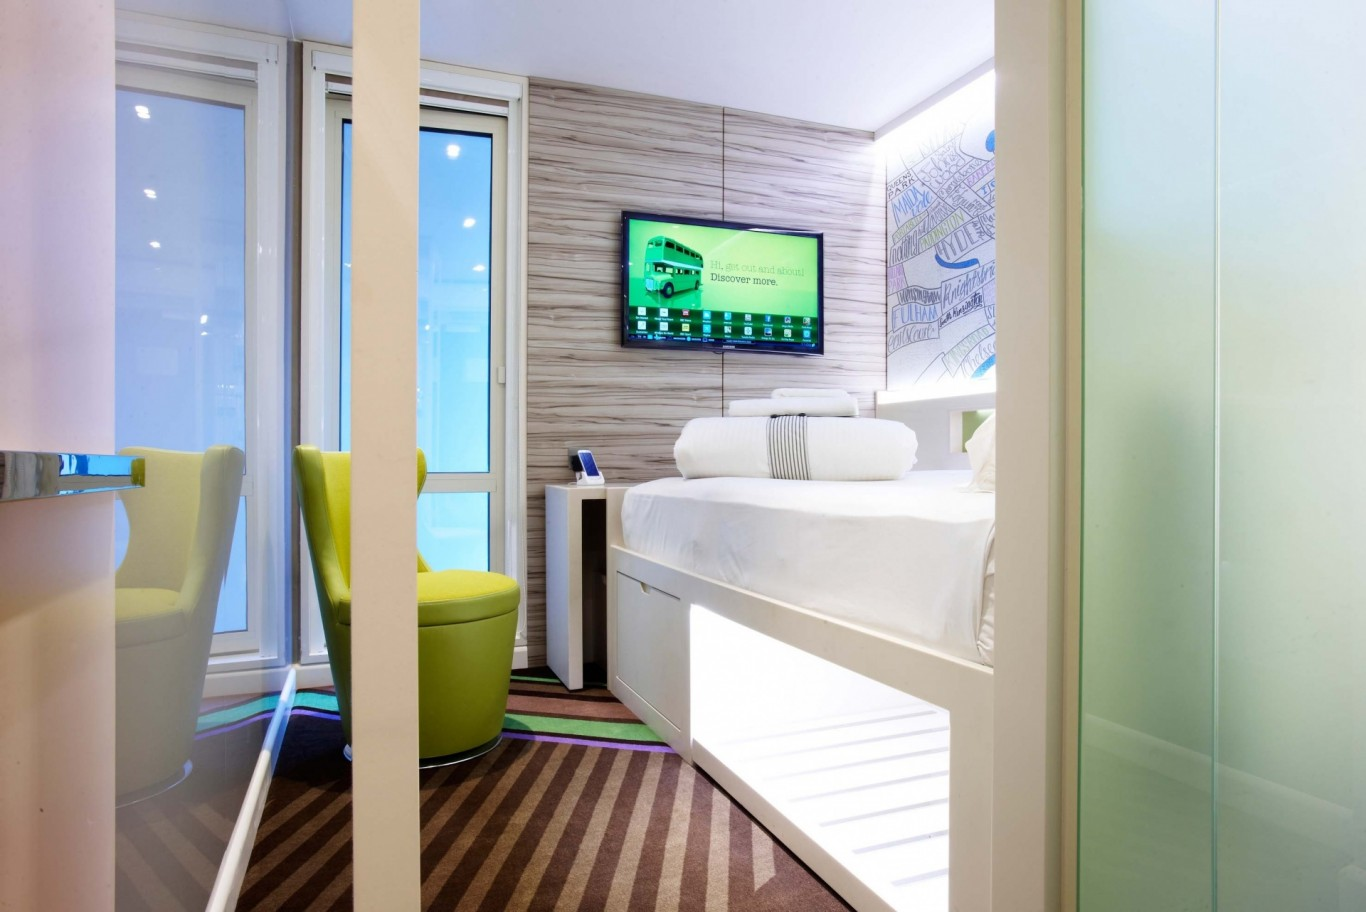 Smart Hotel Hub Lets You Control The Room With Your